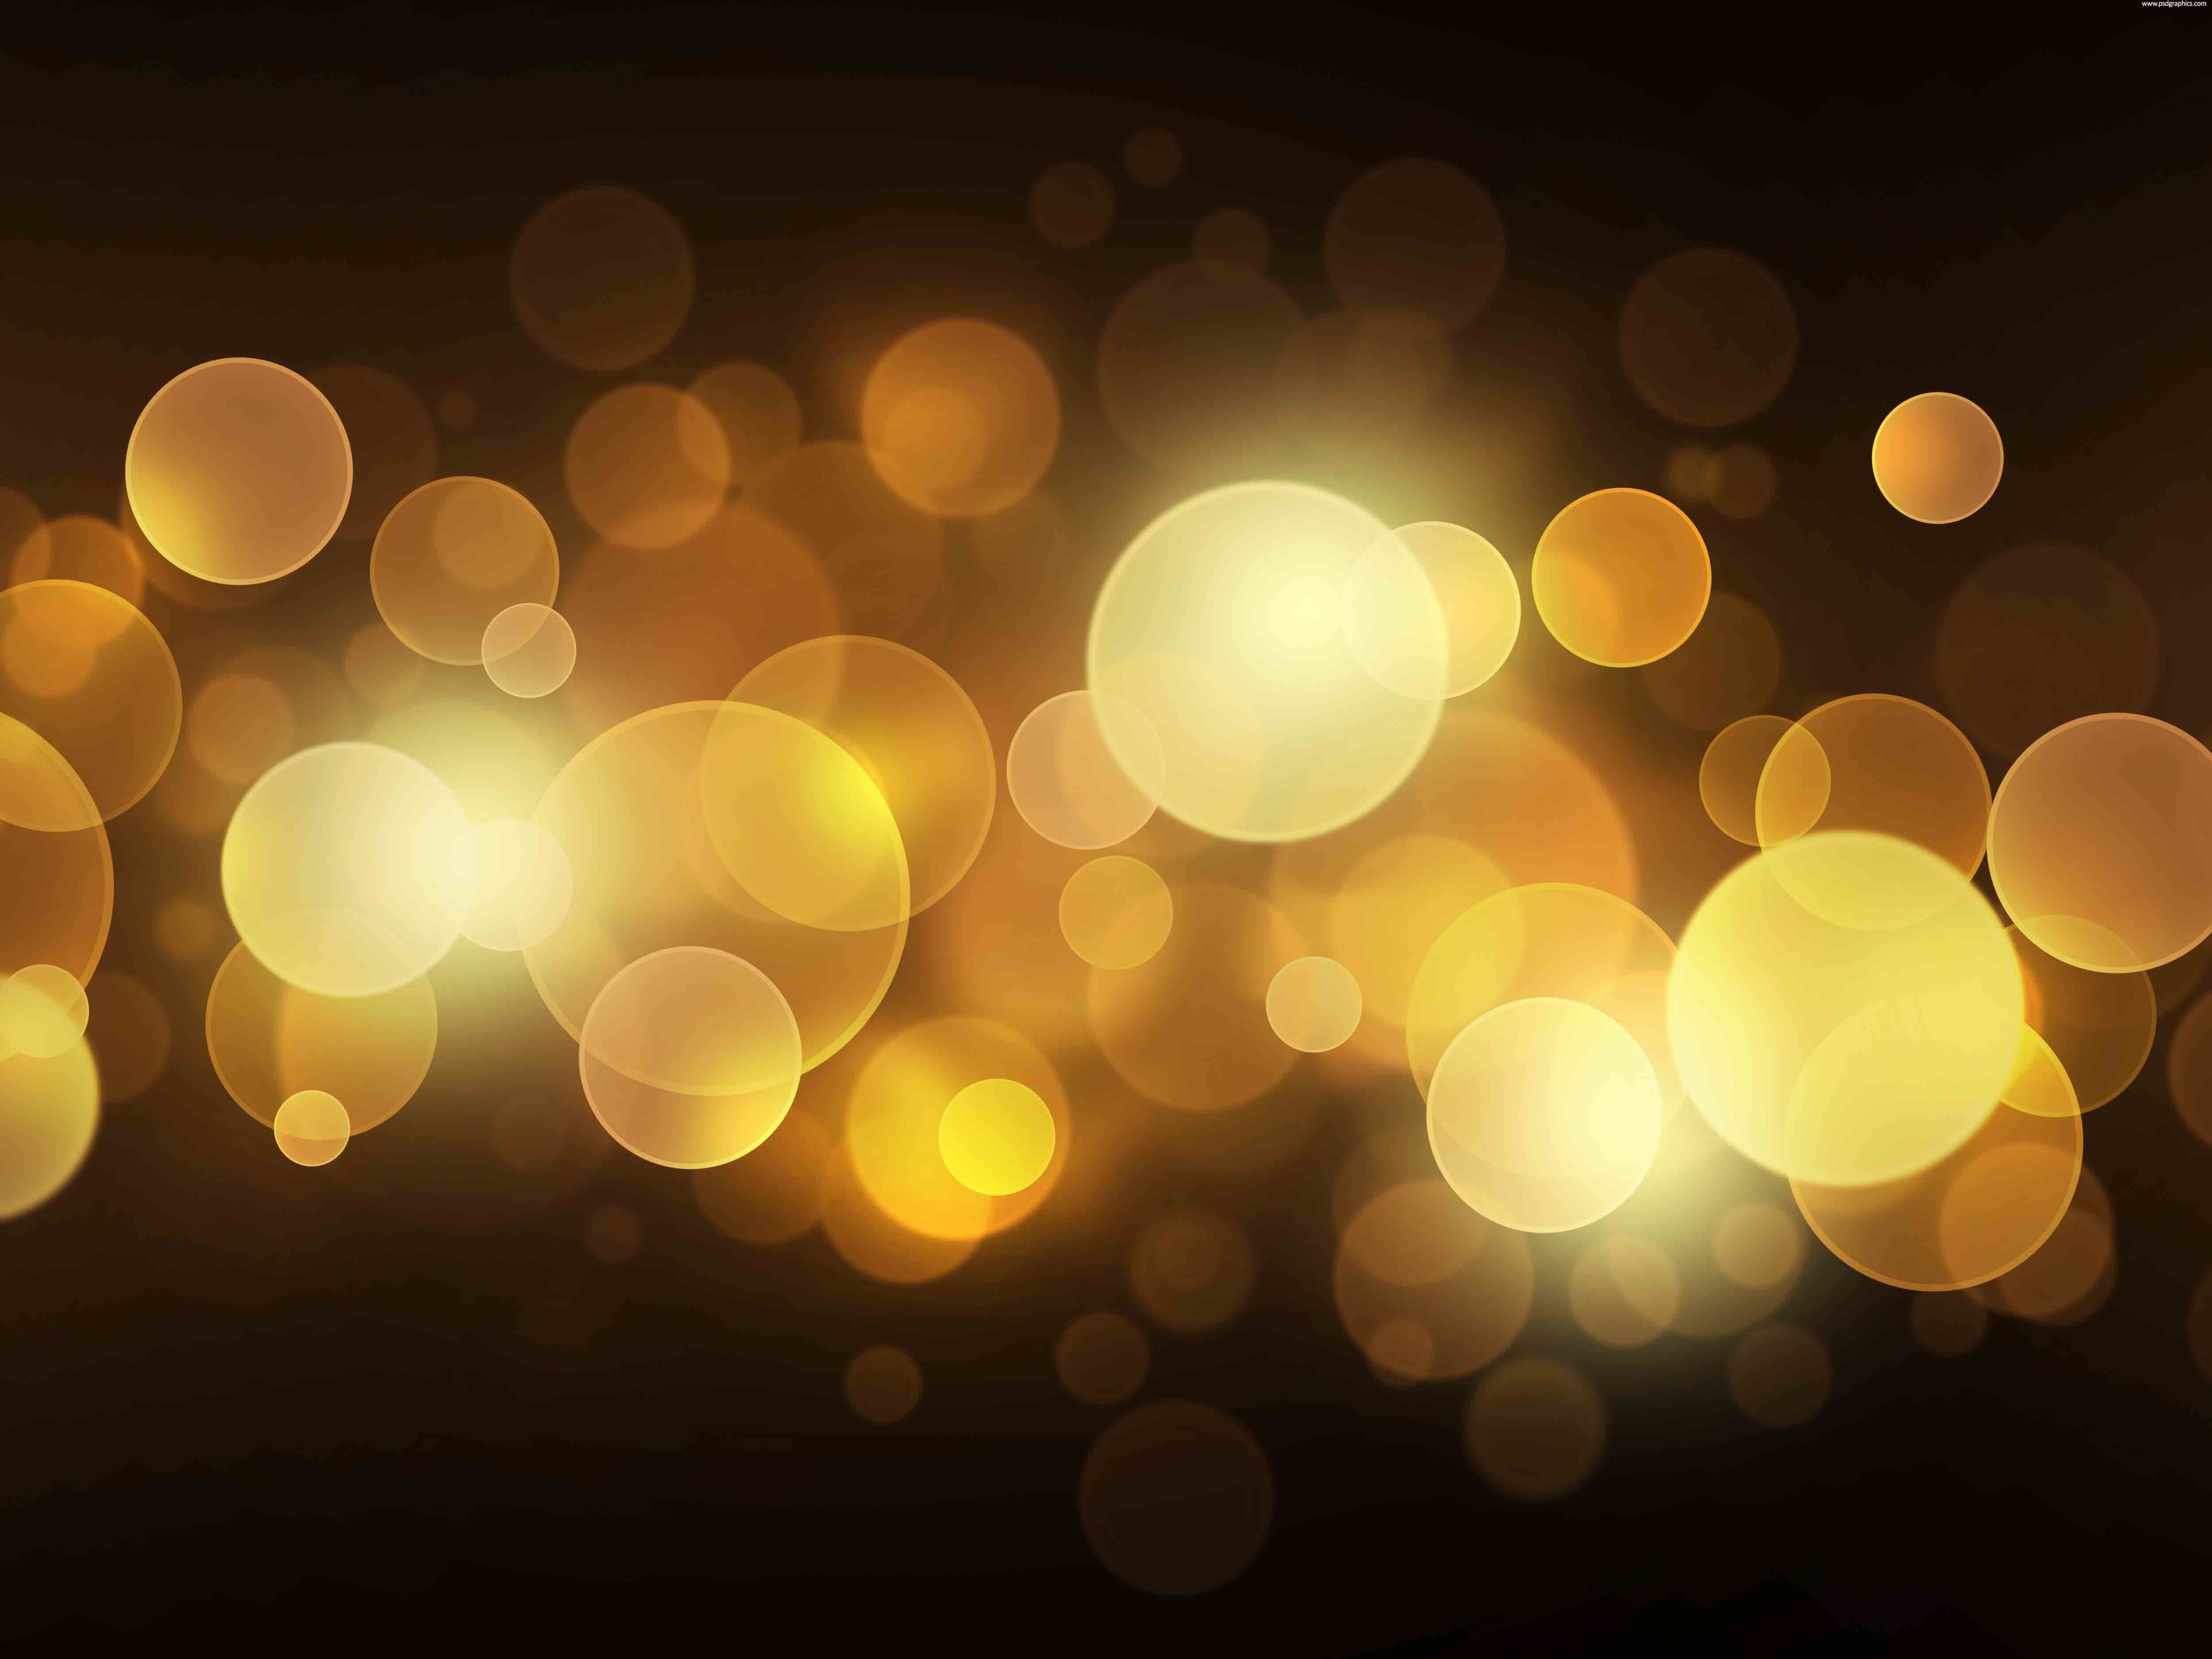 Bokeh effect clipart download graphic free download Bokeh Background Hd Wallpapers Free Download | HD wallpapers in 2019 ... graphic free download